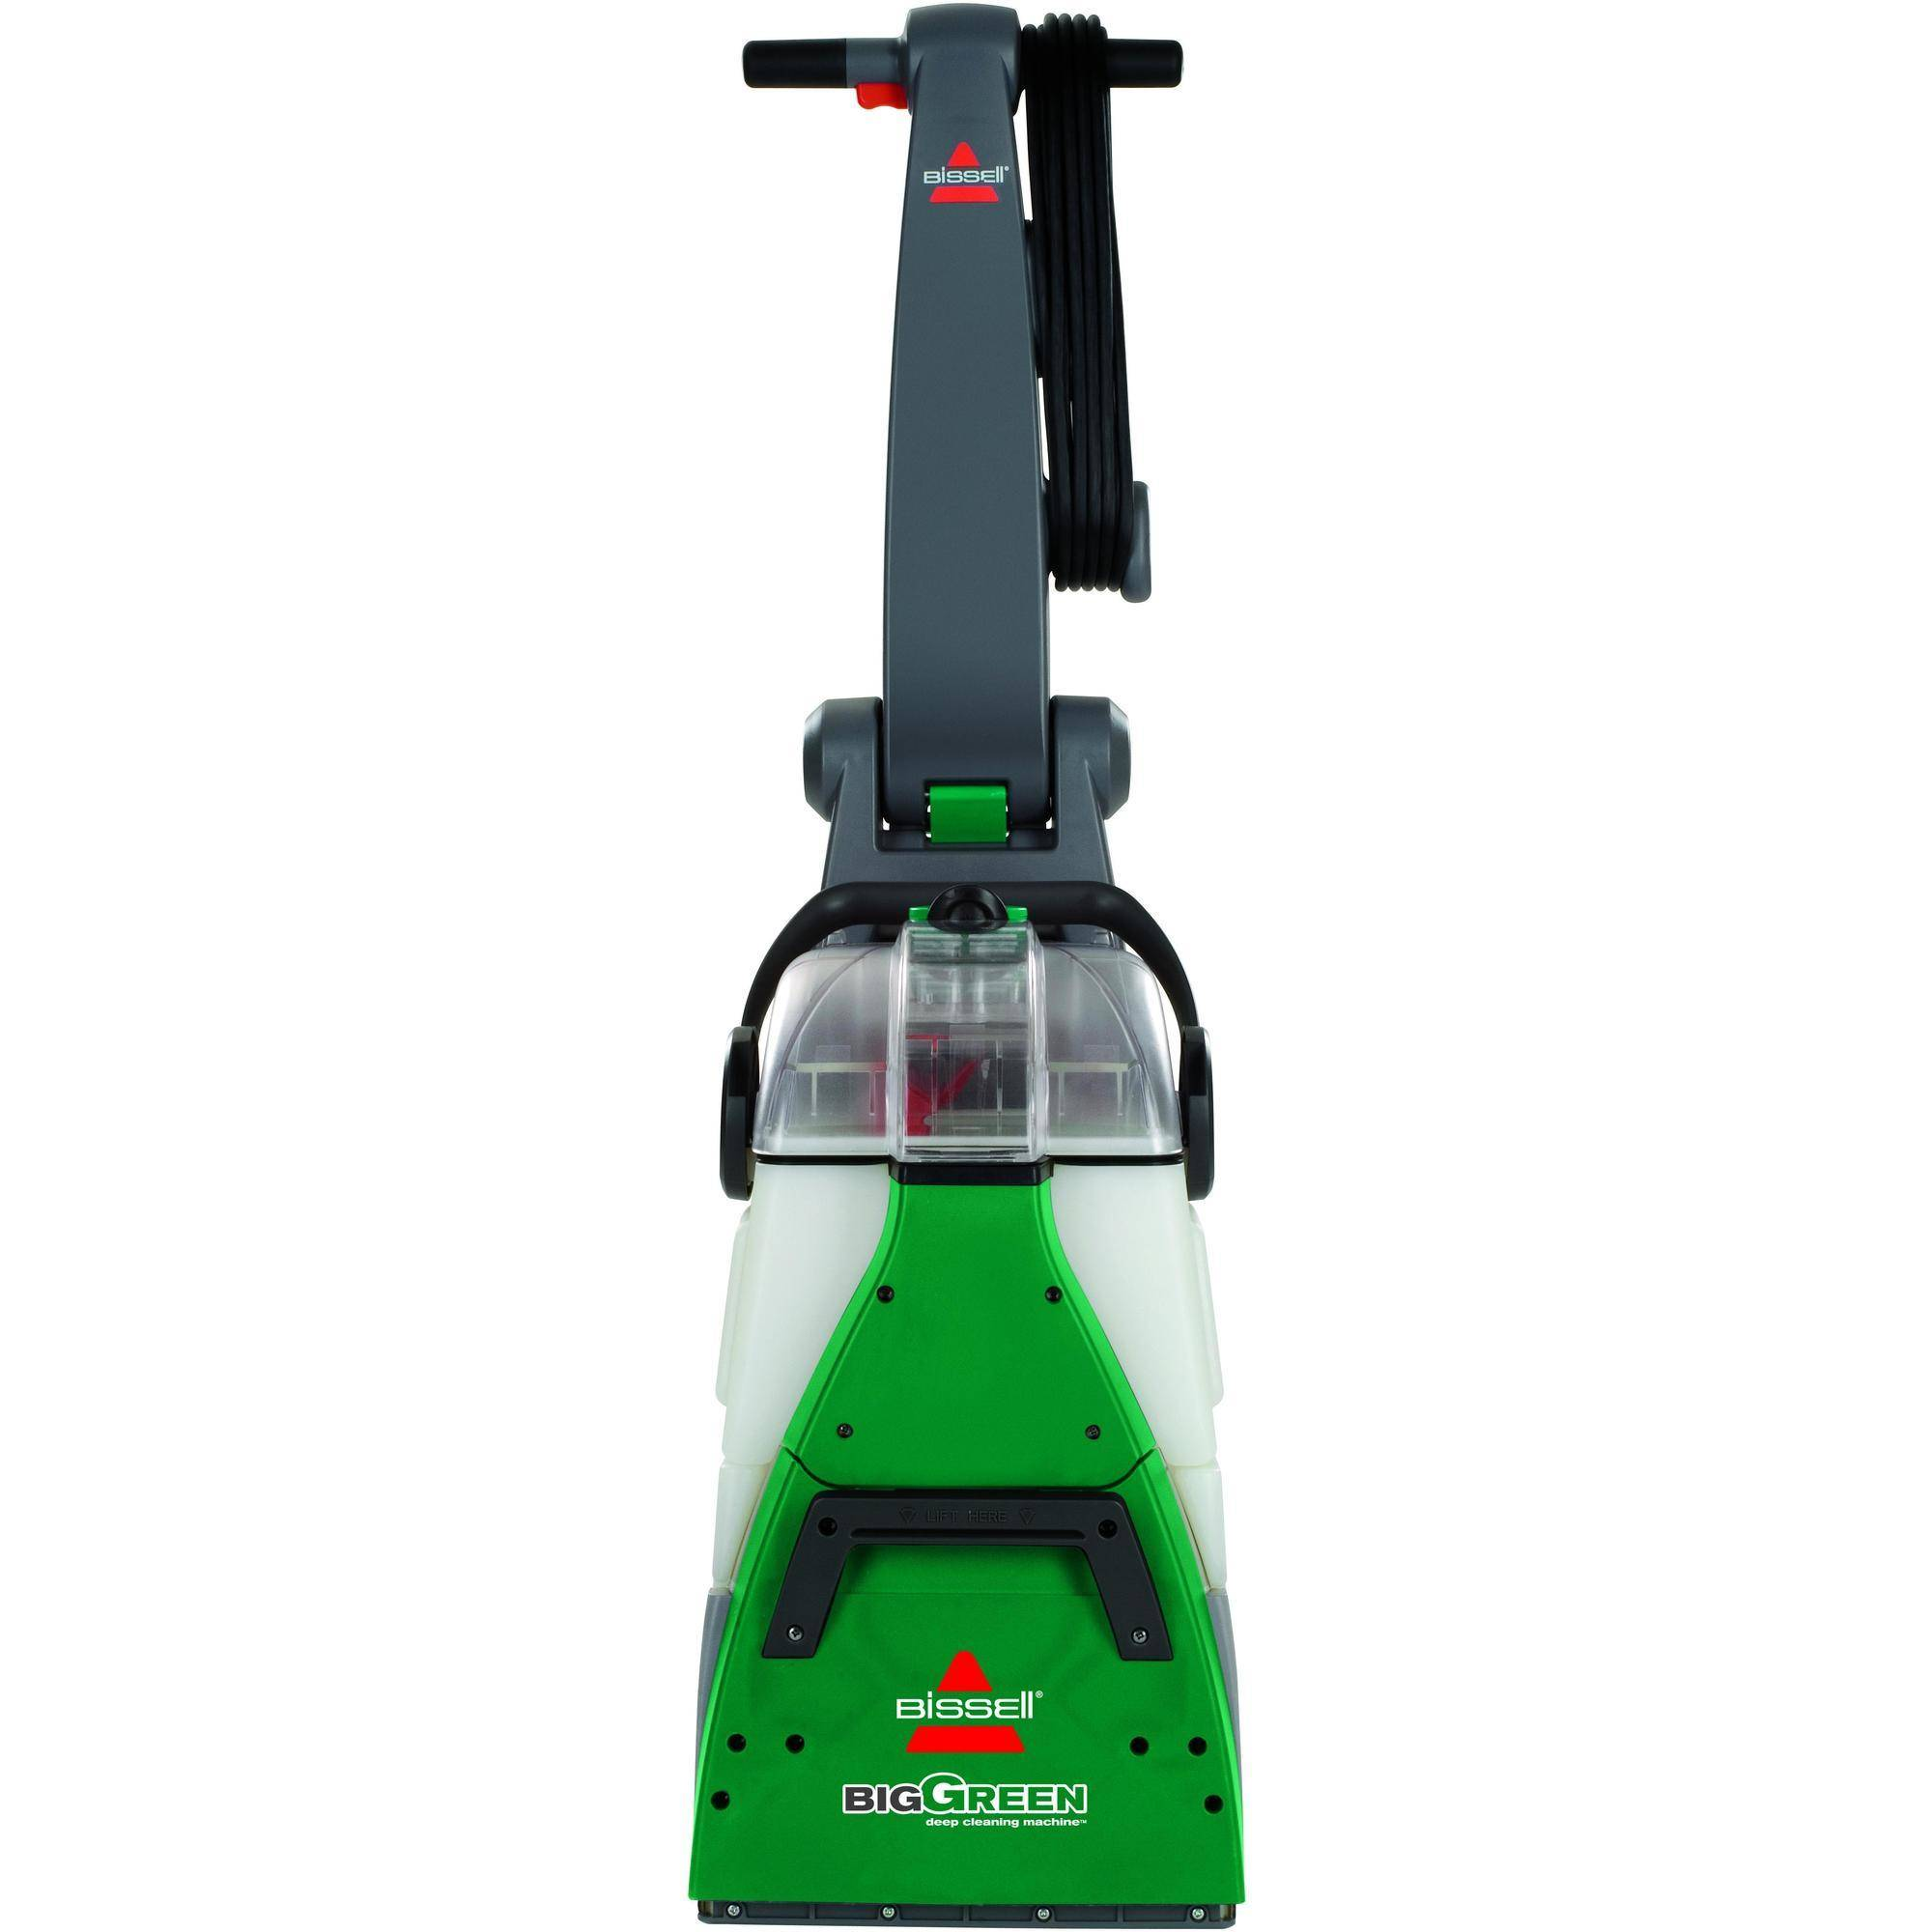 carpet cleaner machine bissell big green cleaning machine carpet cleaner 86t3 12651